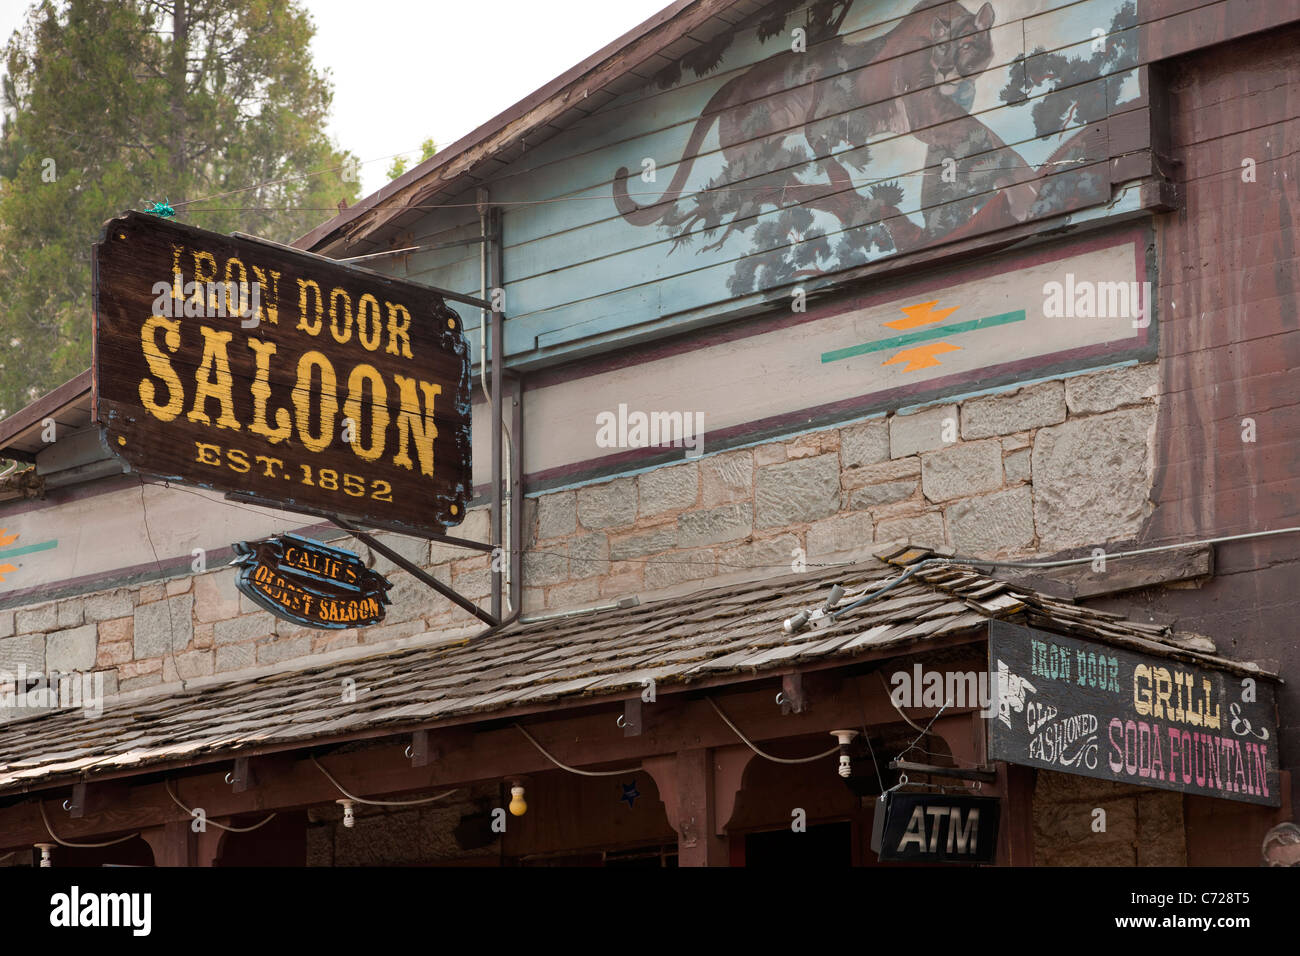 Iron Door Saloon 1852 in Groveland, a pioneer gold rush town on Route 120 near  Yosemite National Park, California, - Stock Image